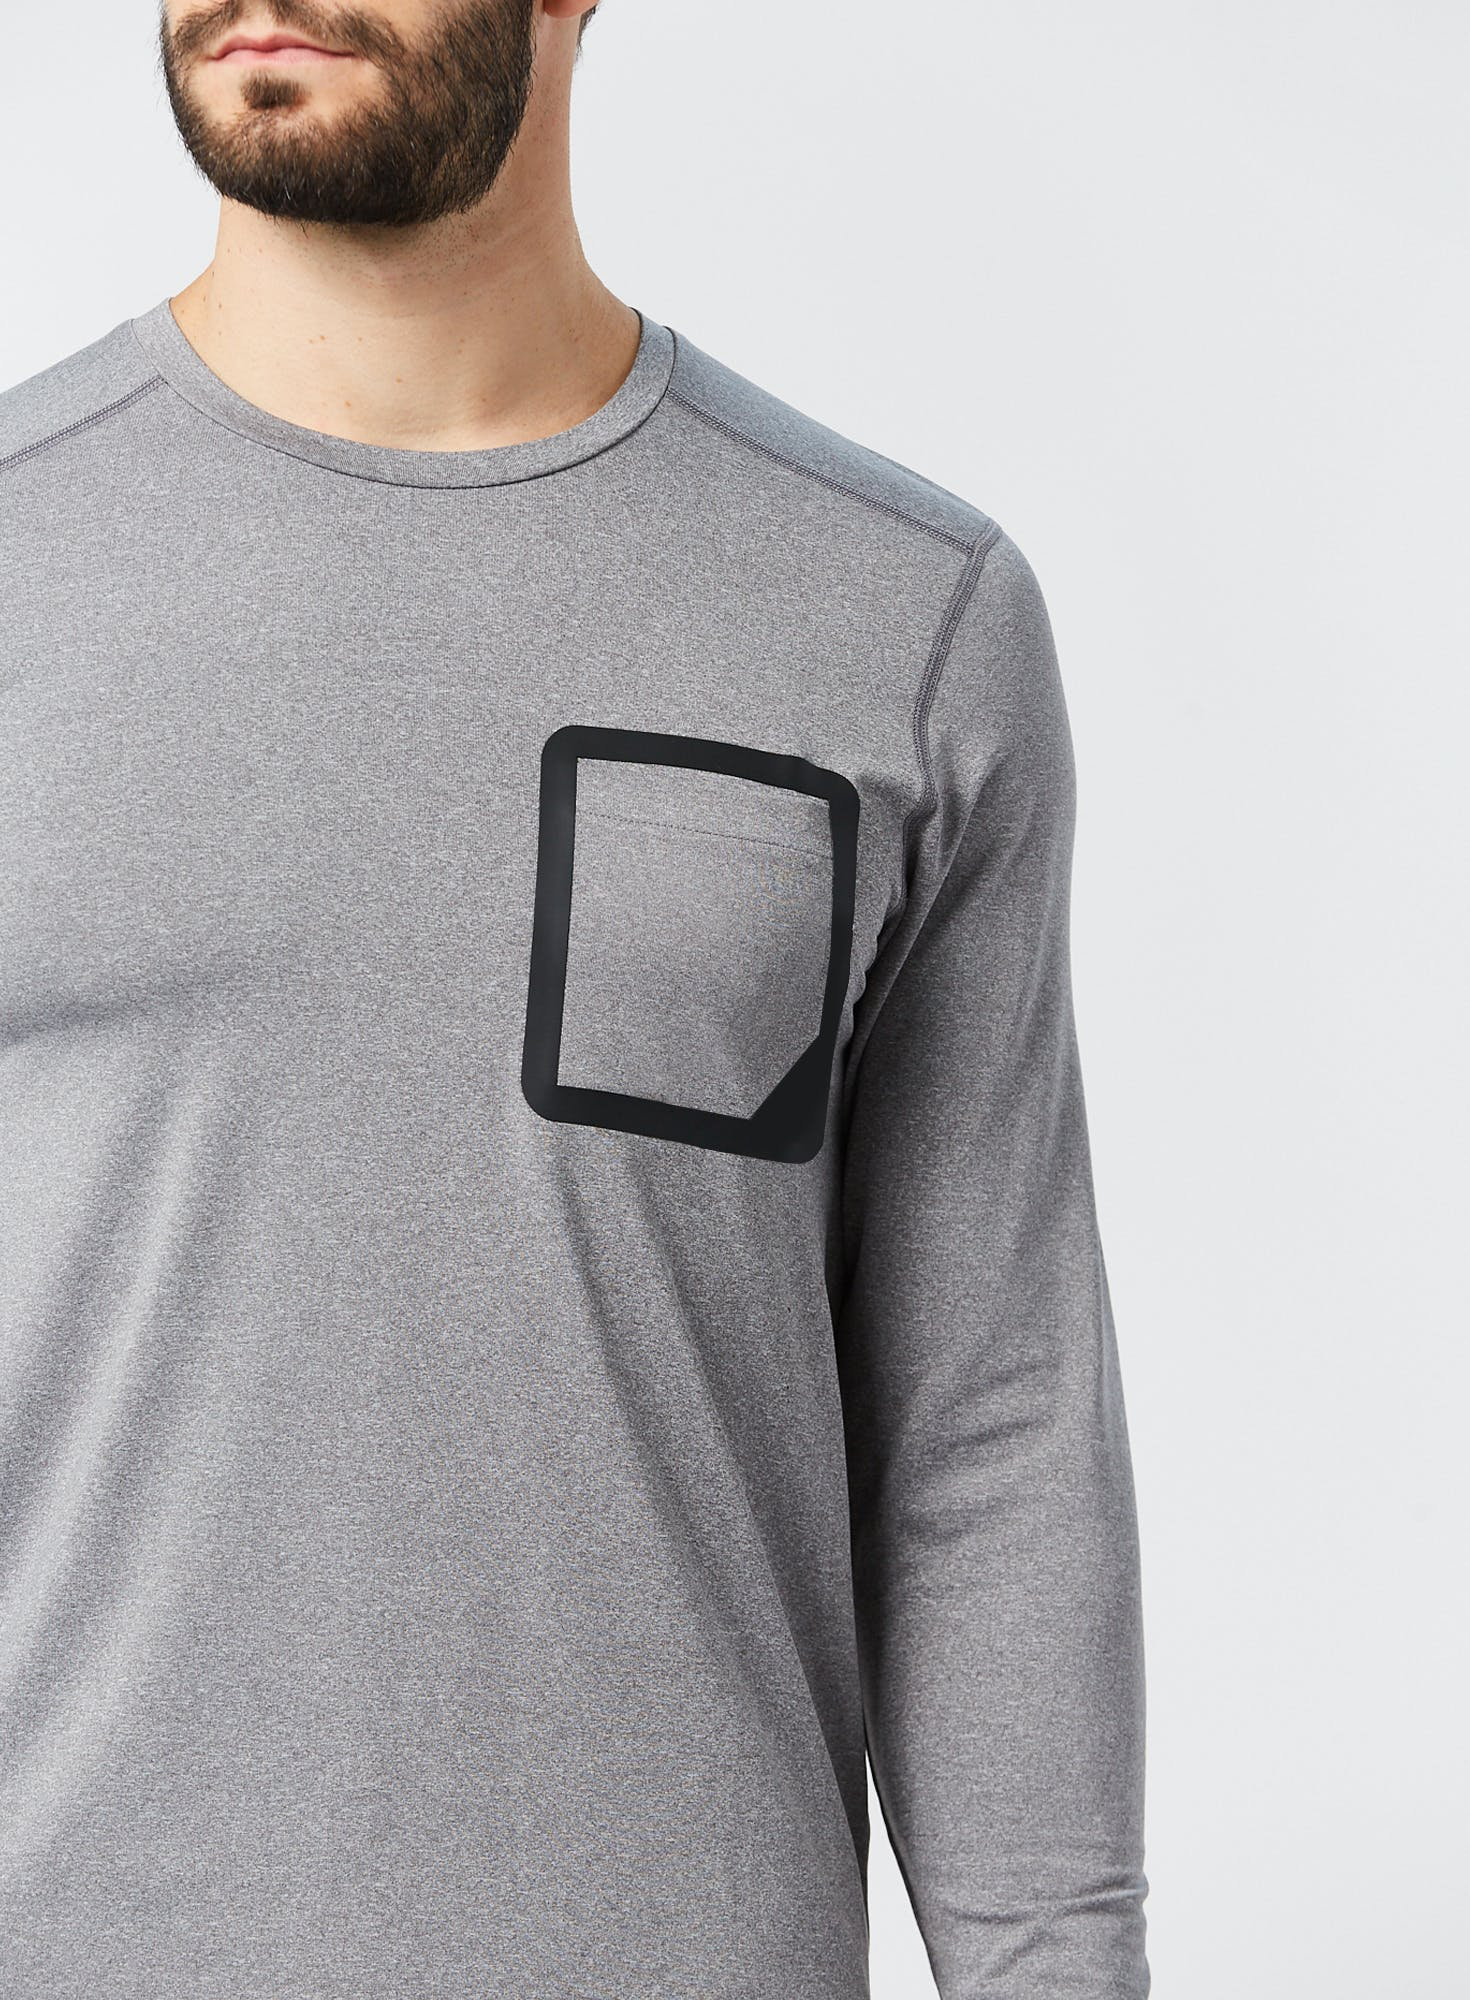 Tech Stretch Long Sleeve Tee Bonus Image